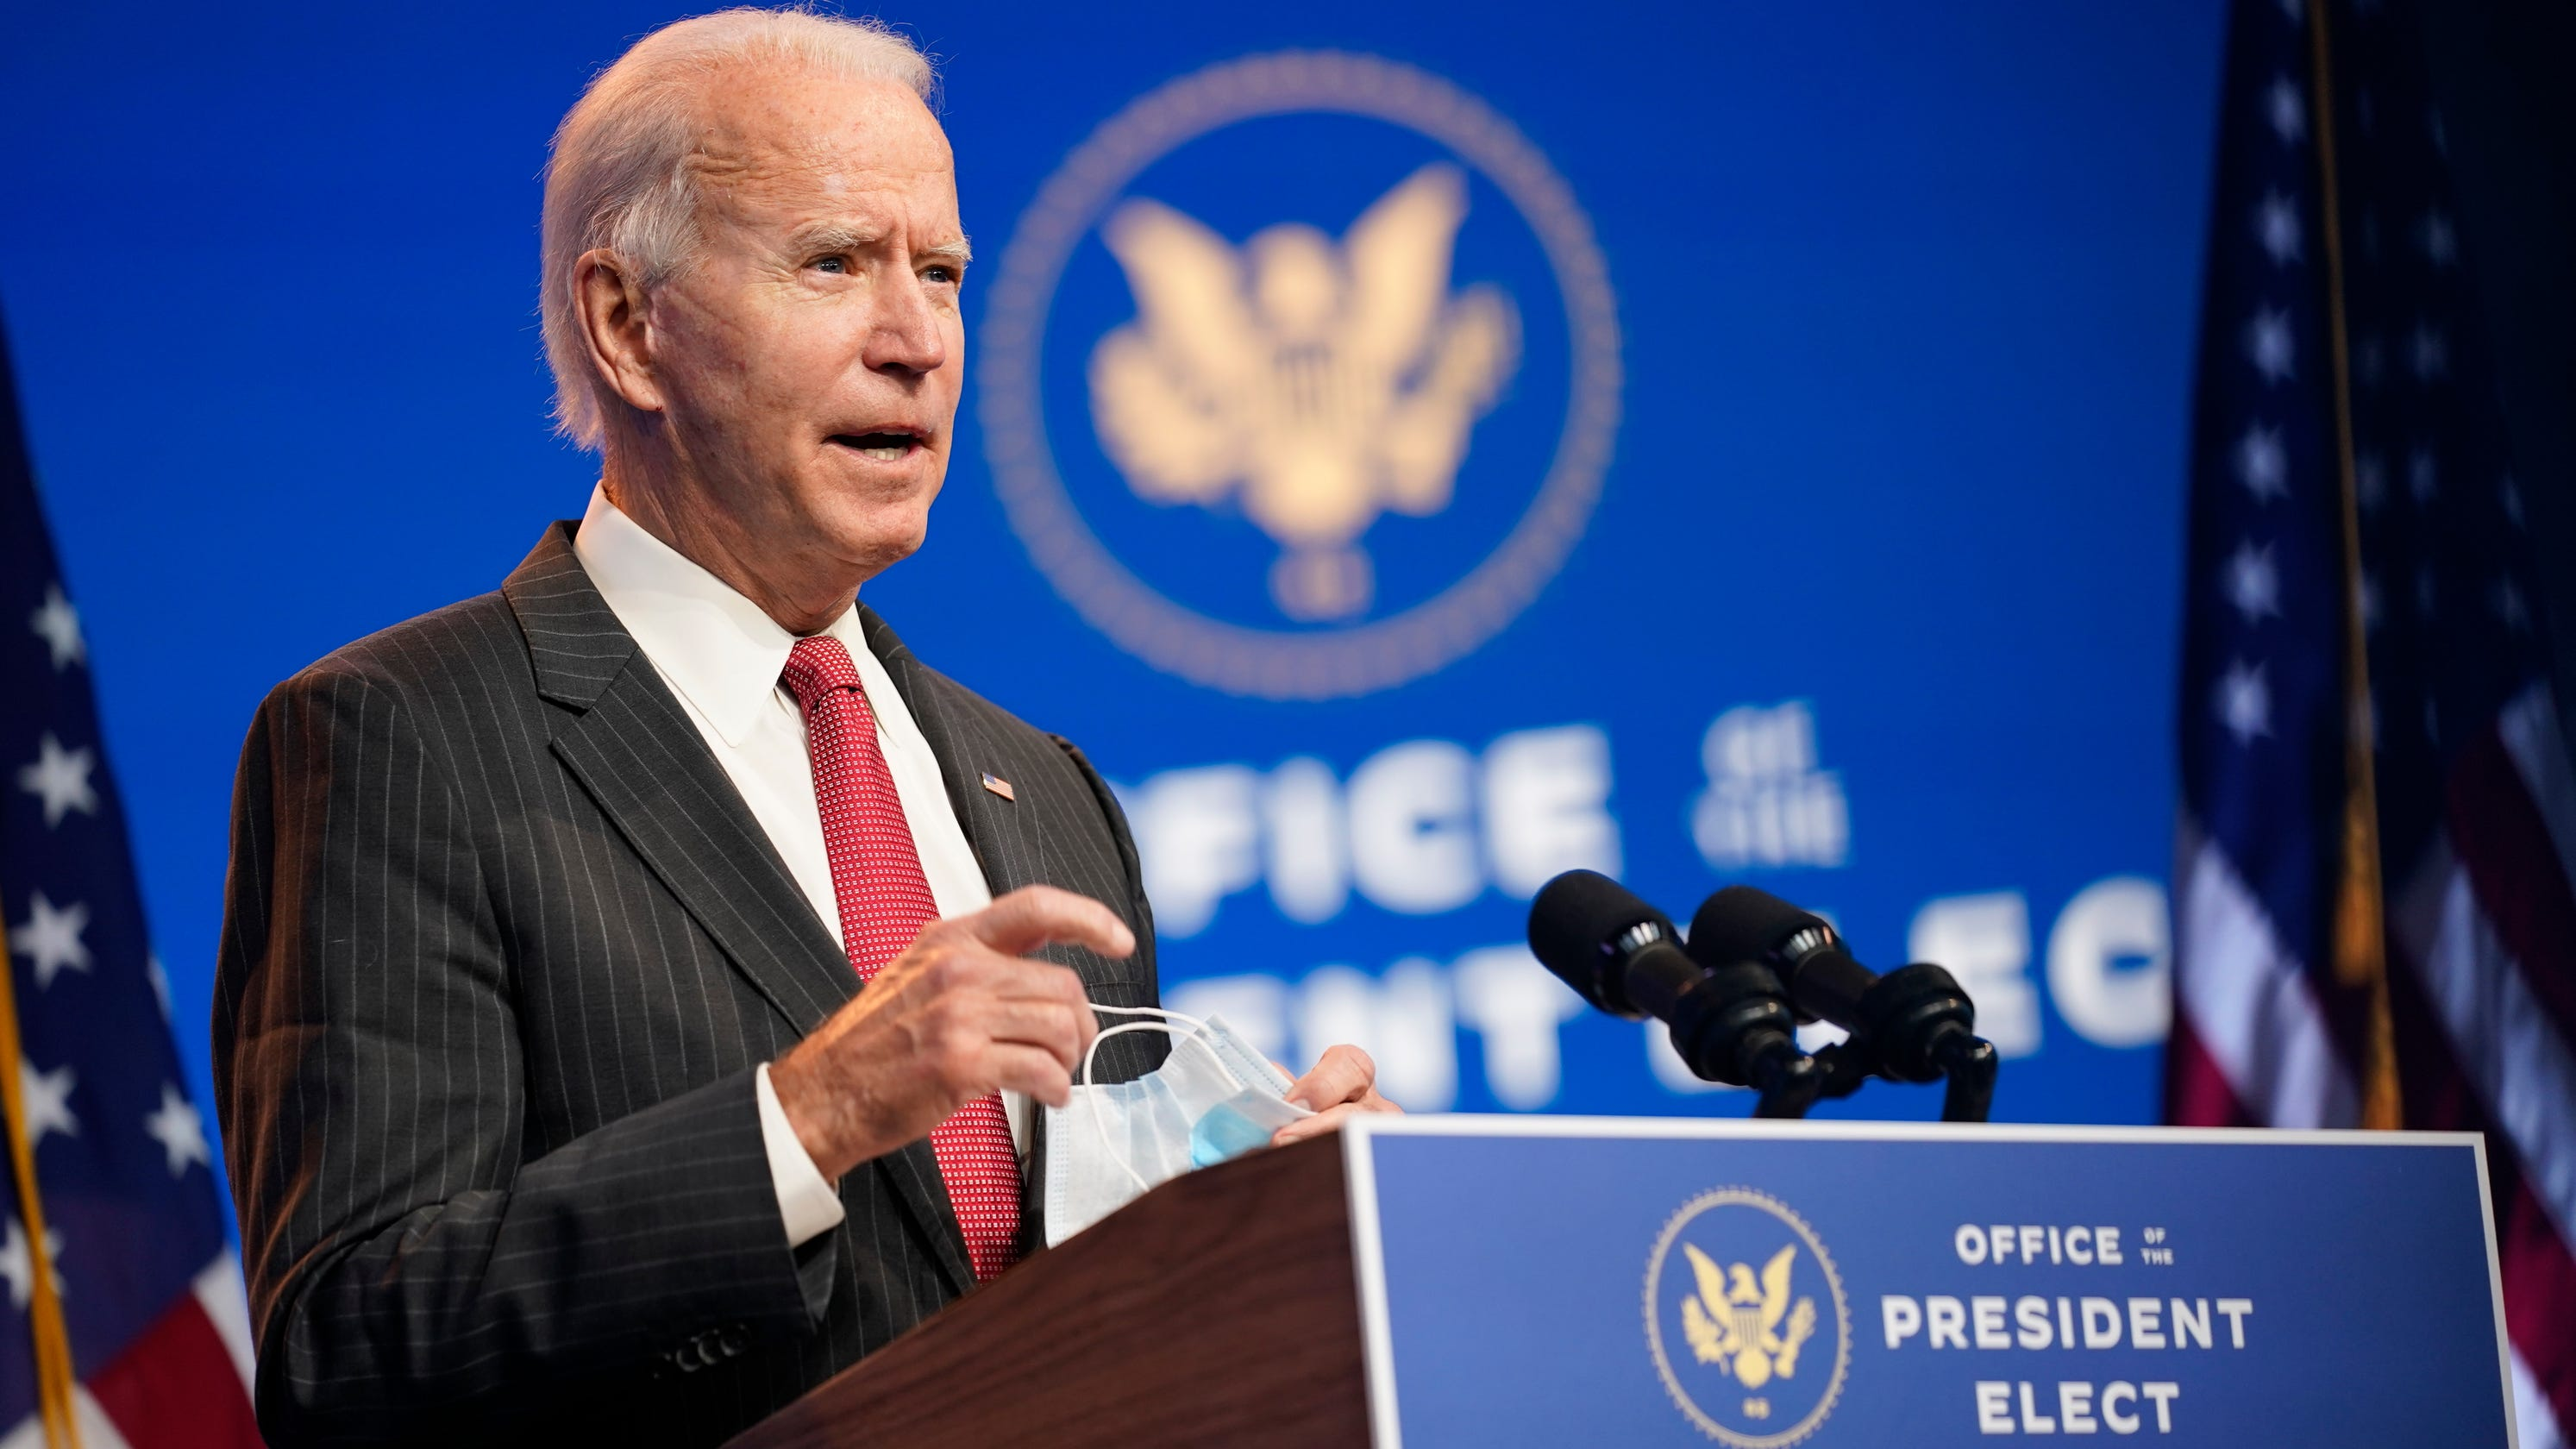 Biden announces economic team with Janet Yellen at Treasury, Neera Tanden at budget office